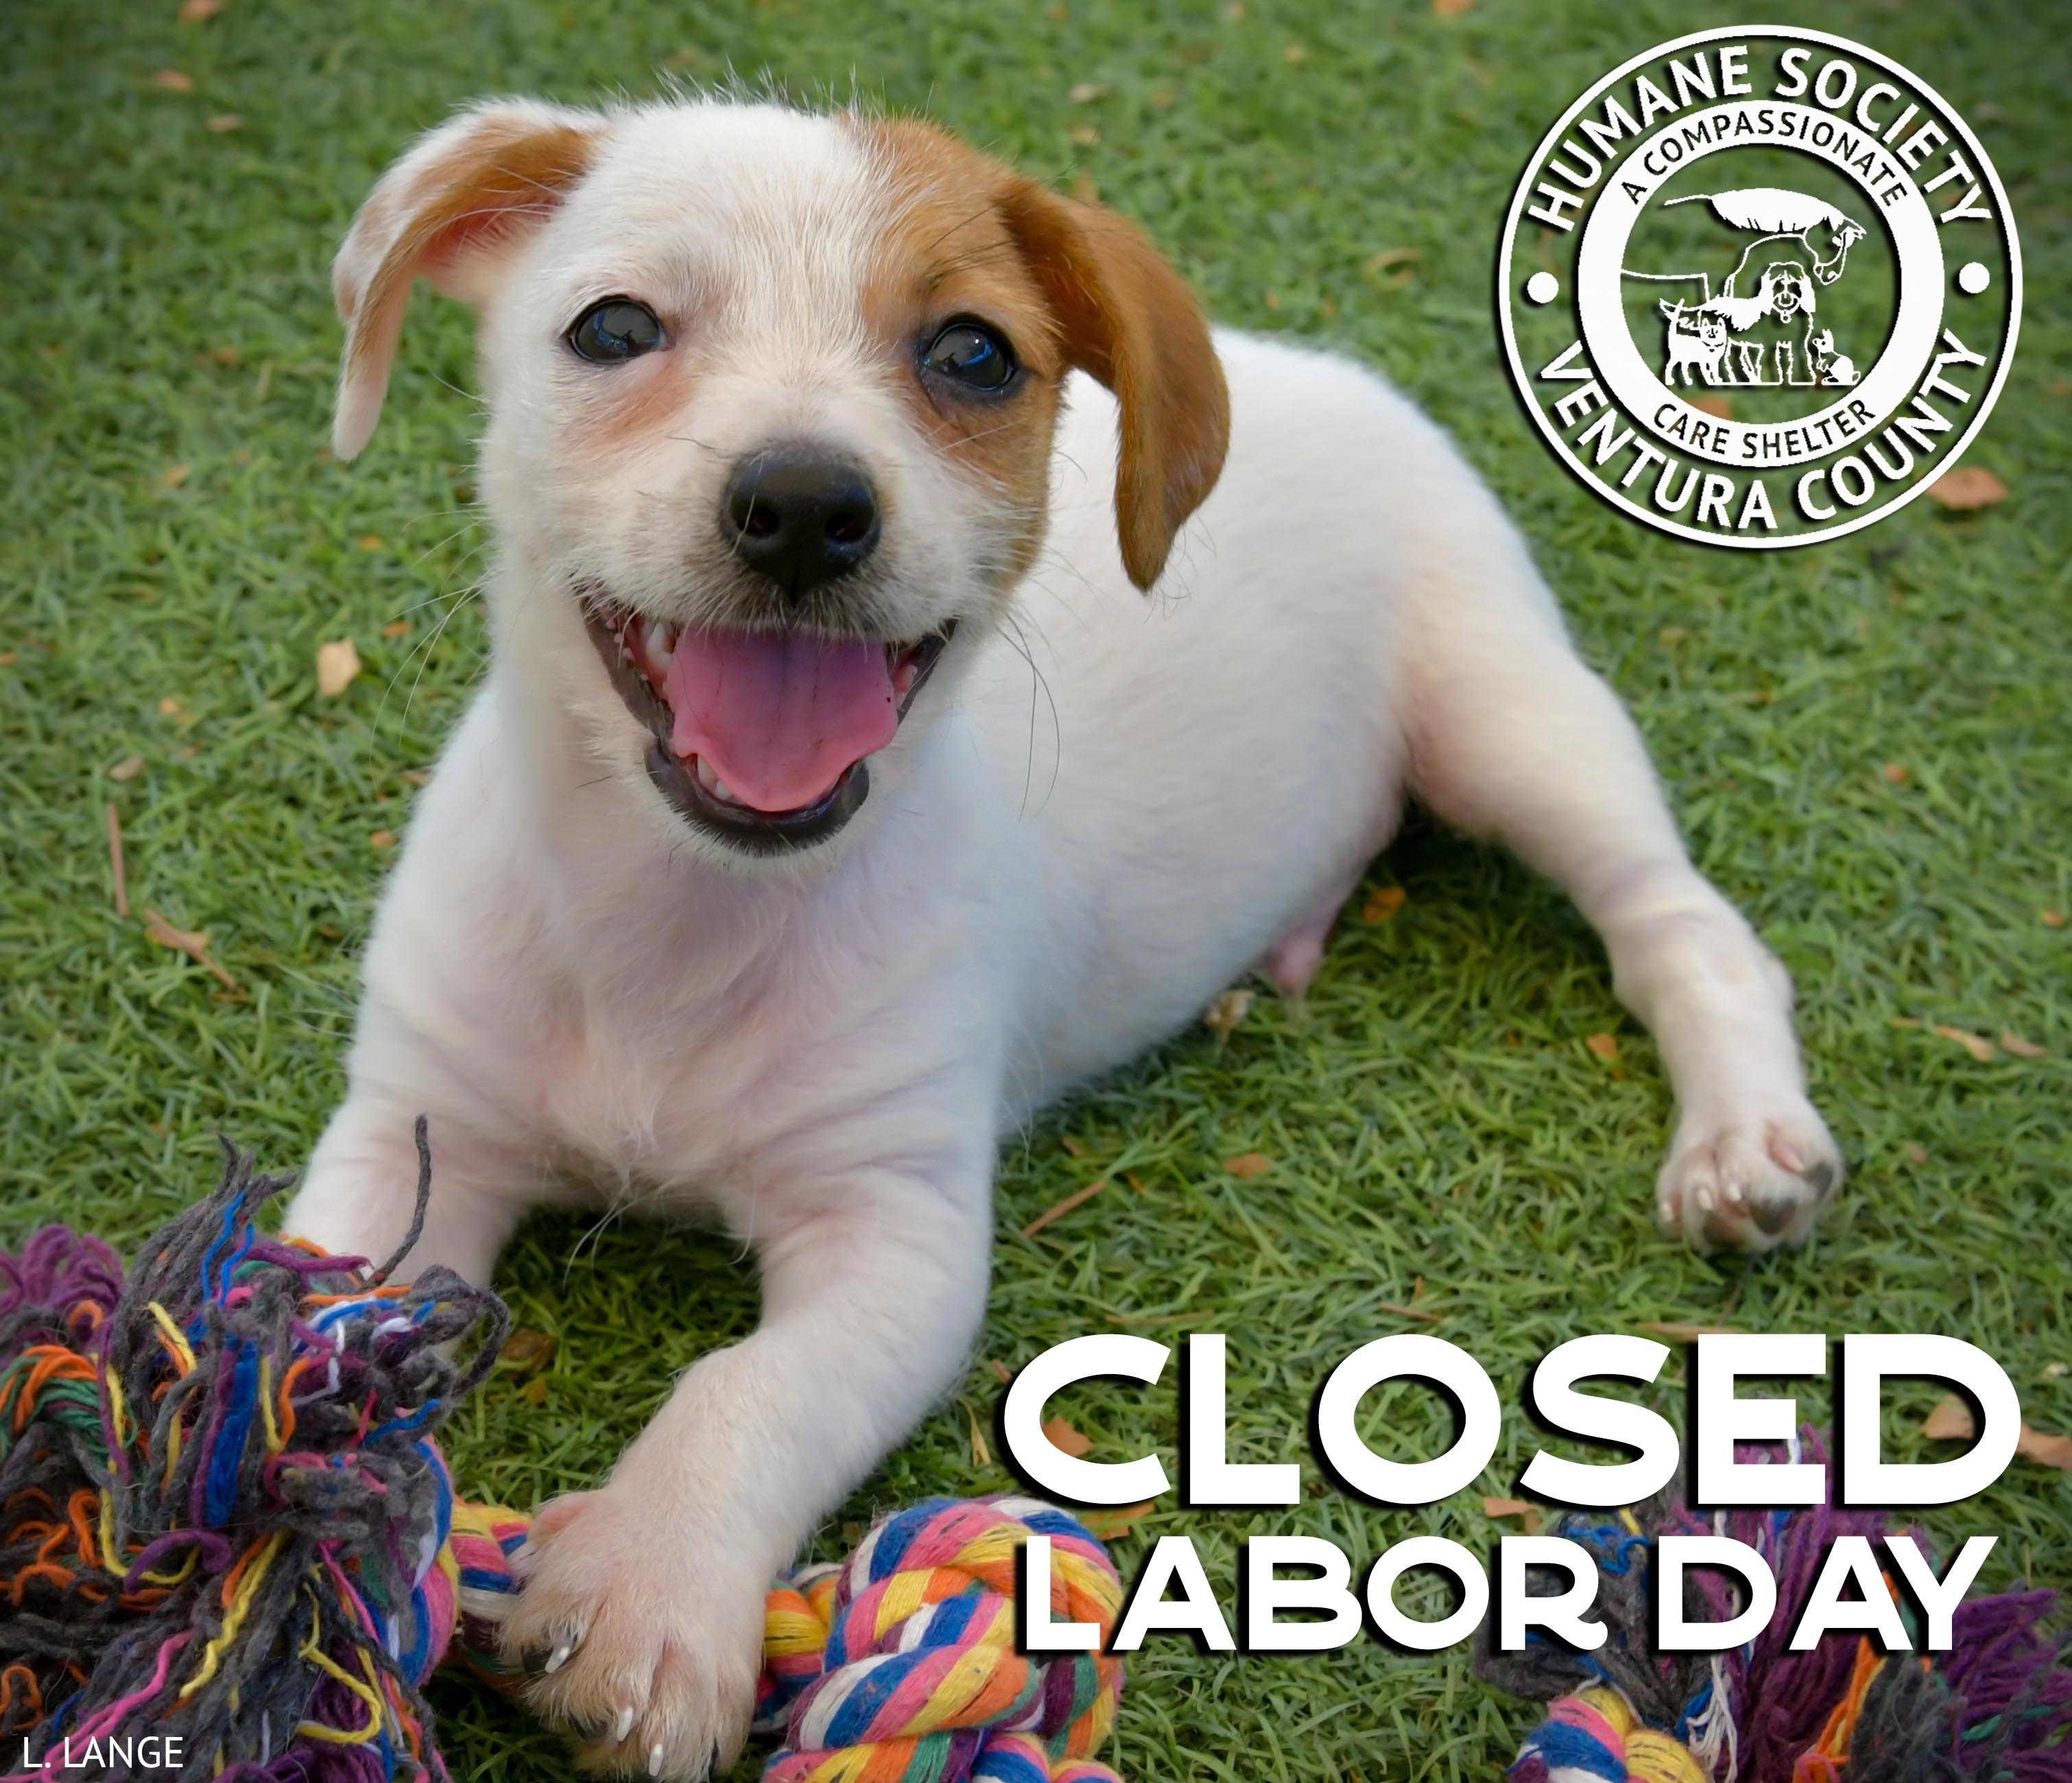 Closed.labor.day.jpg